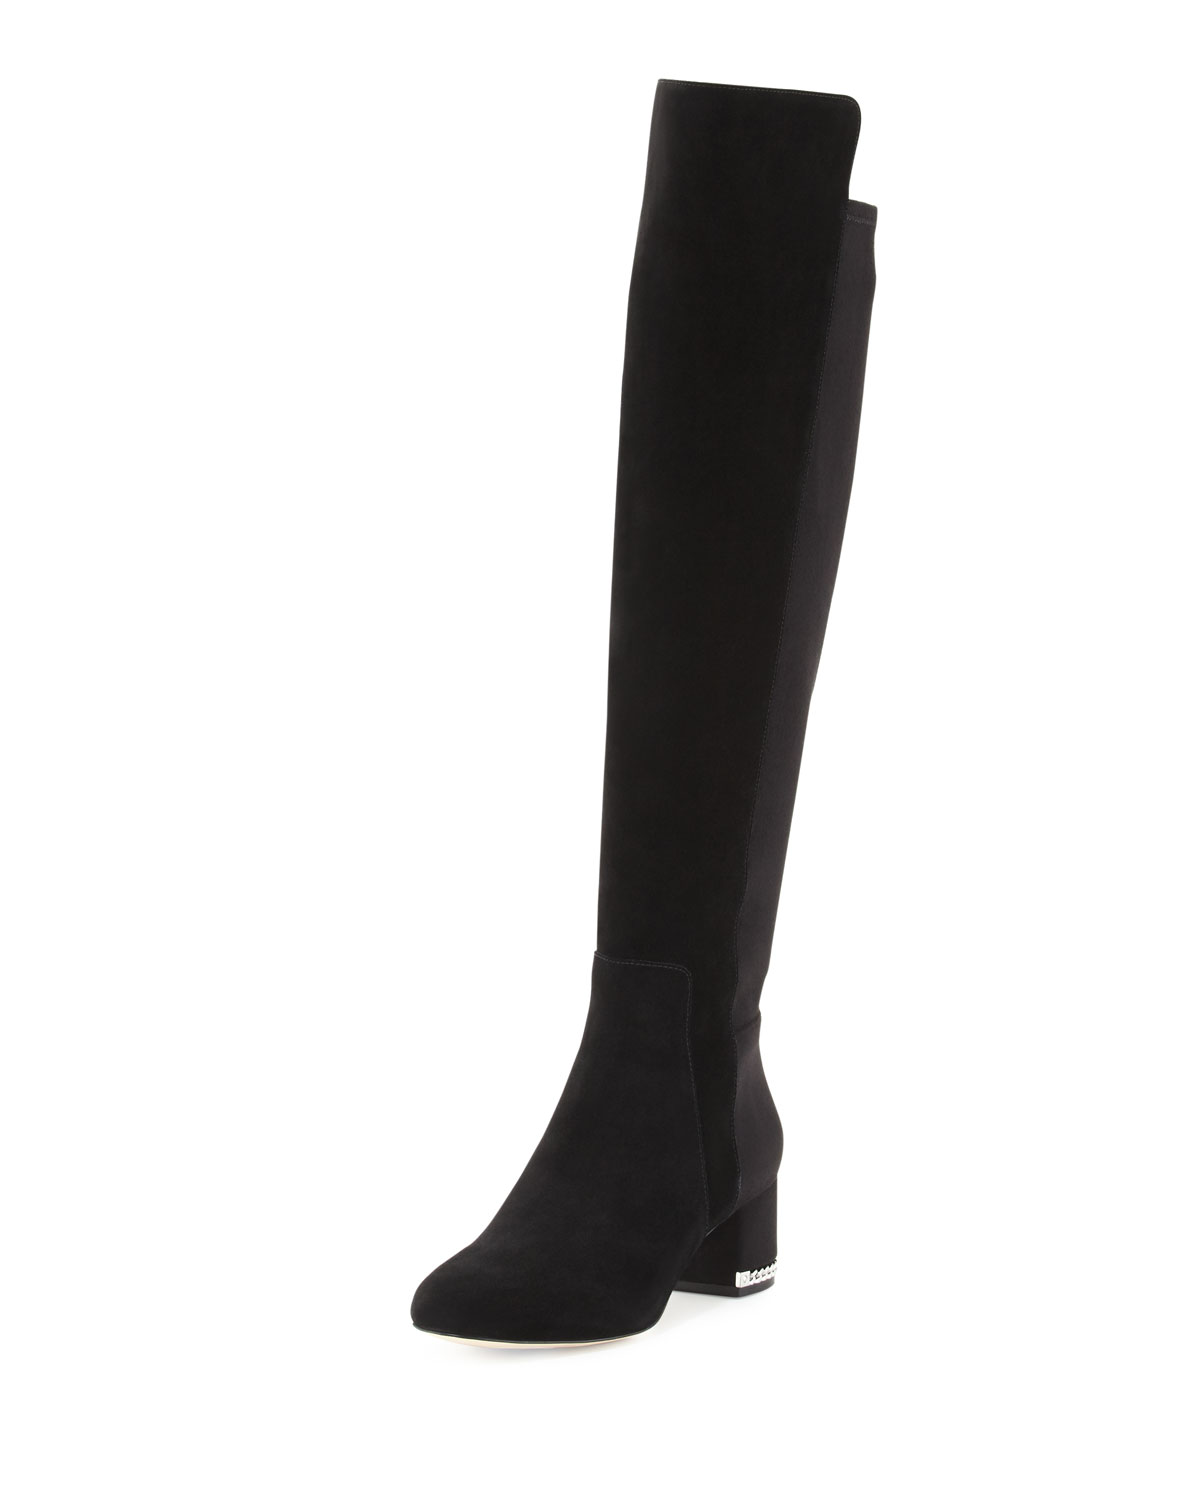 a492cd7956 MICHAEL Michael Kors Sabrina Suede Over-the-Knee Boot, Black ...